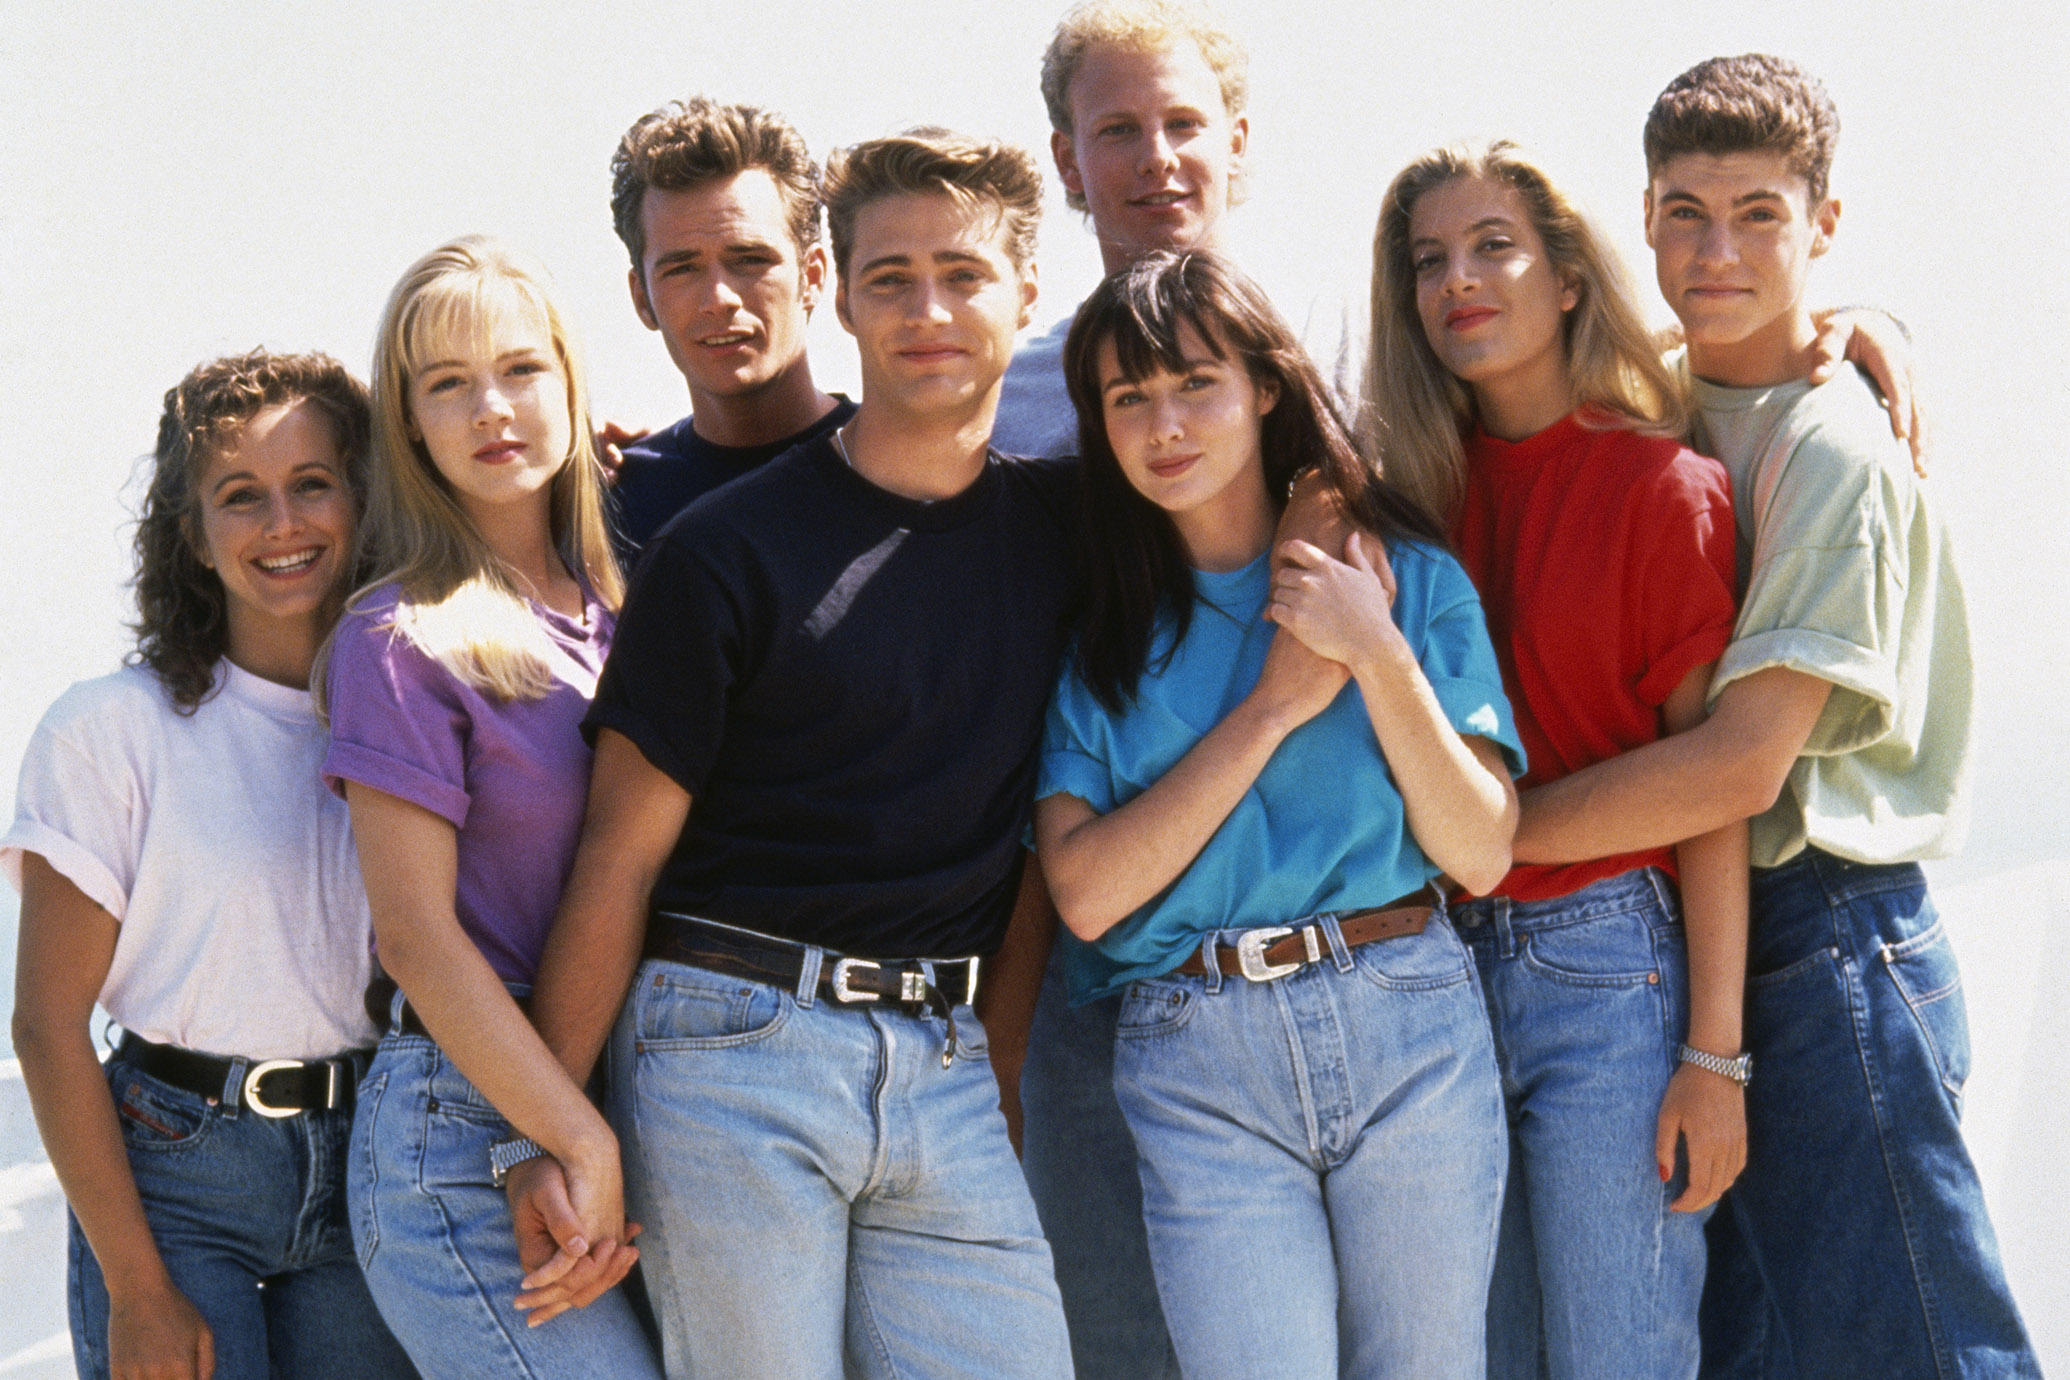 Cast of Beverly Hills, 90210 (Photo by mikel roberts/Sygma via Getty Images)